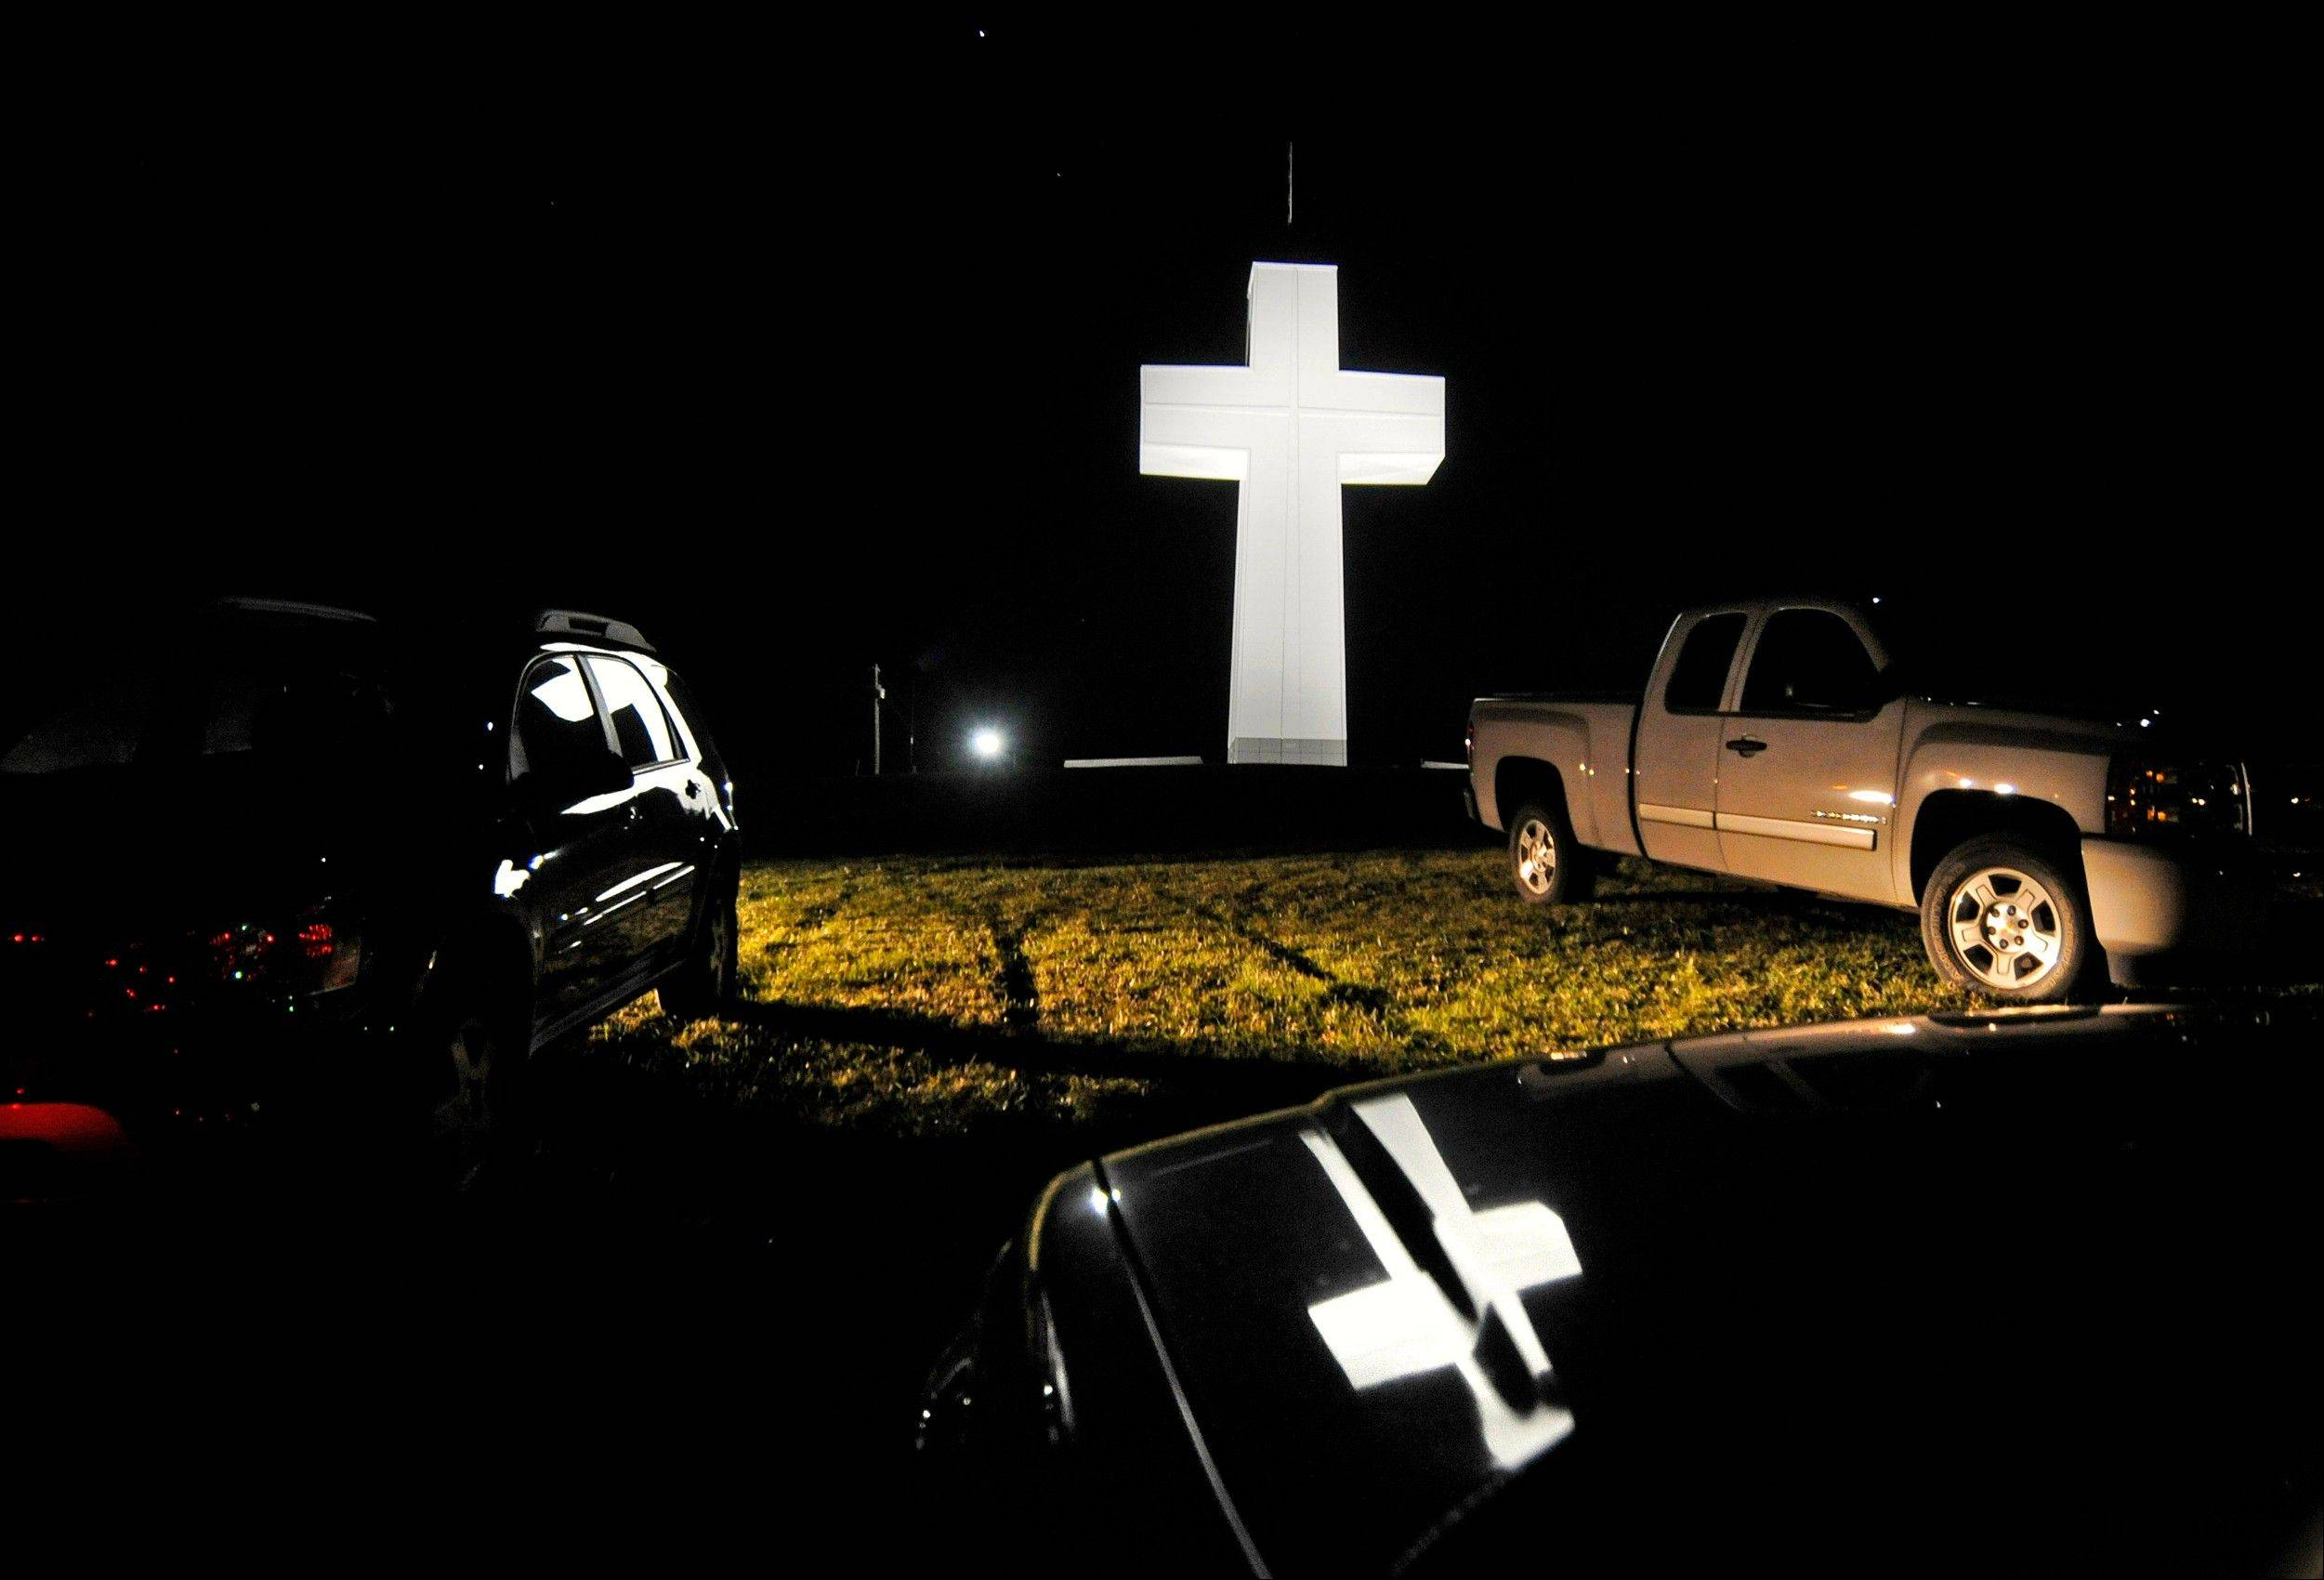 Vehicles begin to clear the hillside after a lighting ceremony Saturday at the Bald Knob Cross of Peace in downstate Alto Pass. The lighting ceremony marked the completion of a renovation project that began in 2009.